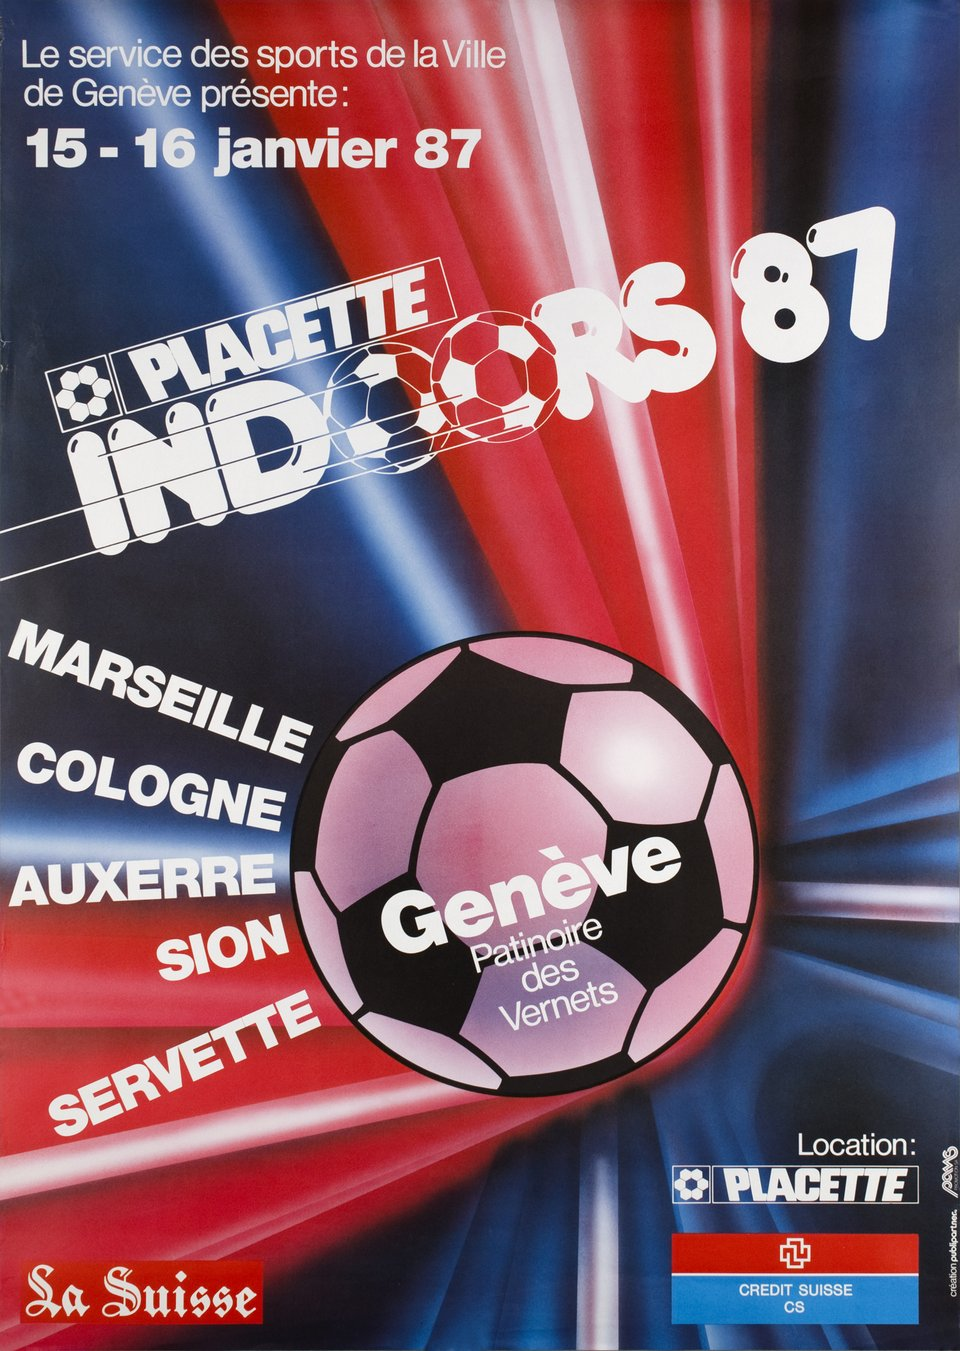 Placette Indoors 86 – Vintage poster – PUBLIPARTNER – 1986